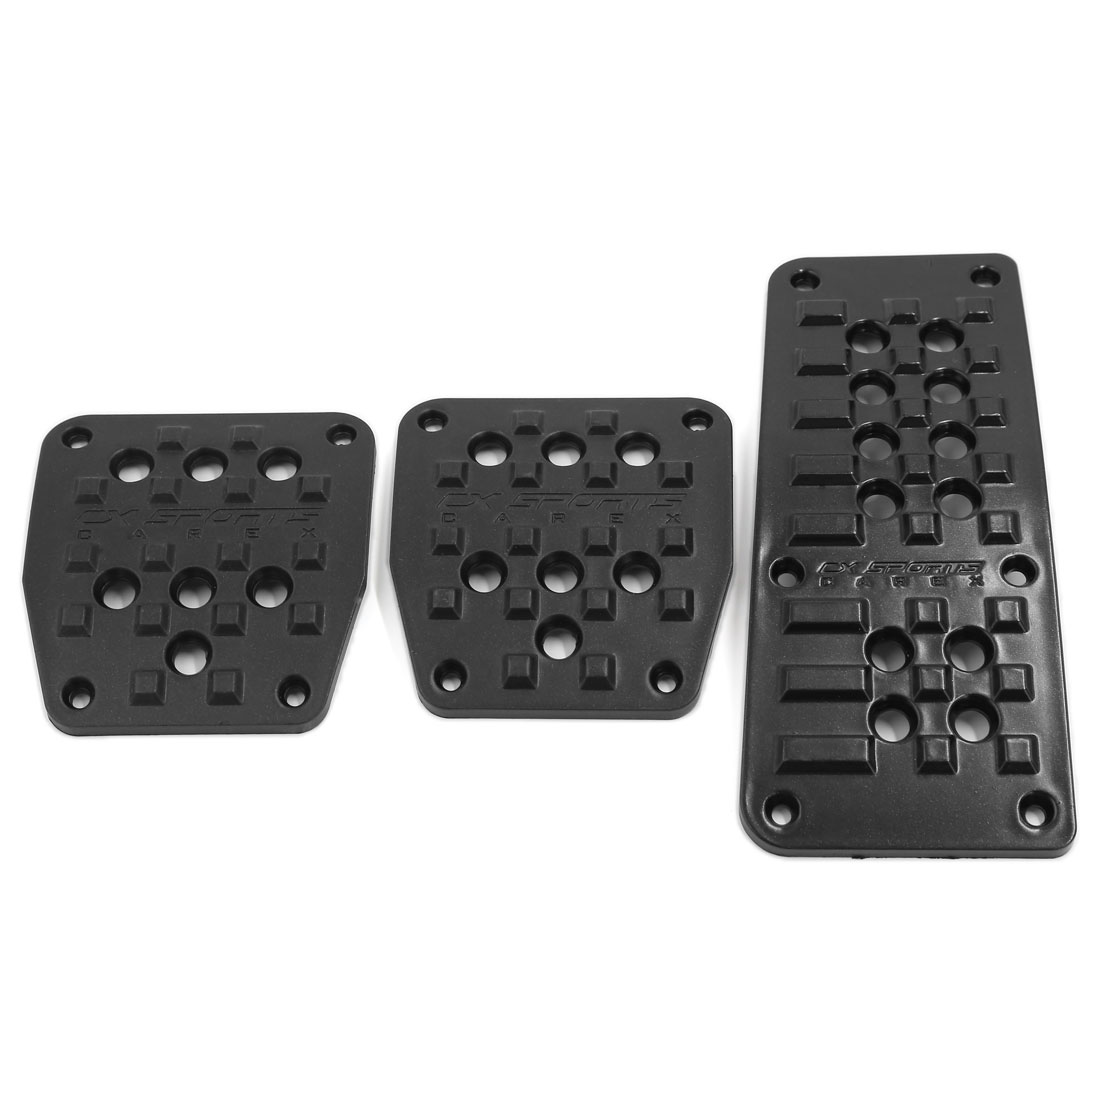 3 in 1 Black Plastic Non-slip Surface Gas Brake Cluth Pedal Cover for Manual Car